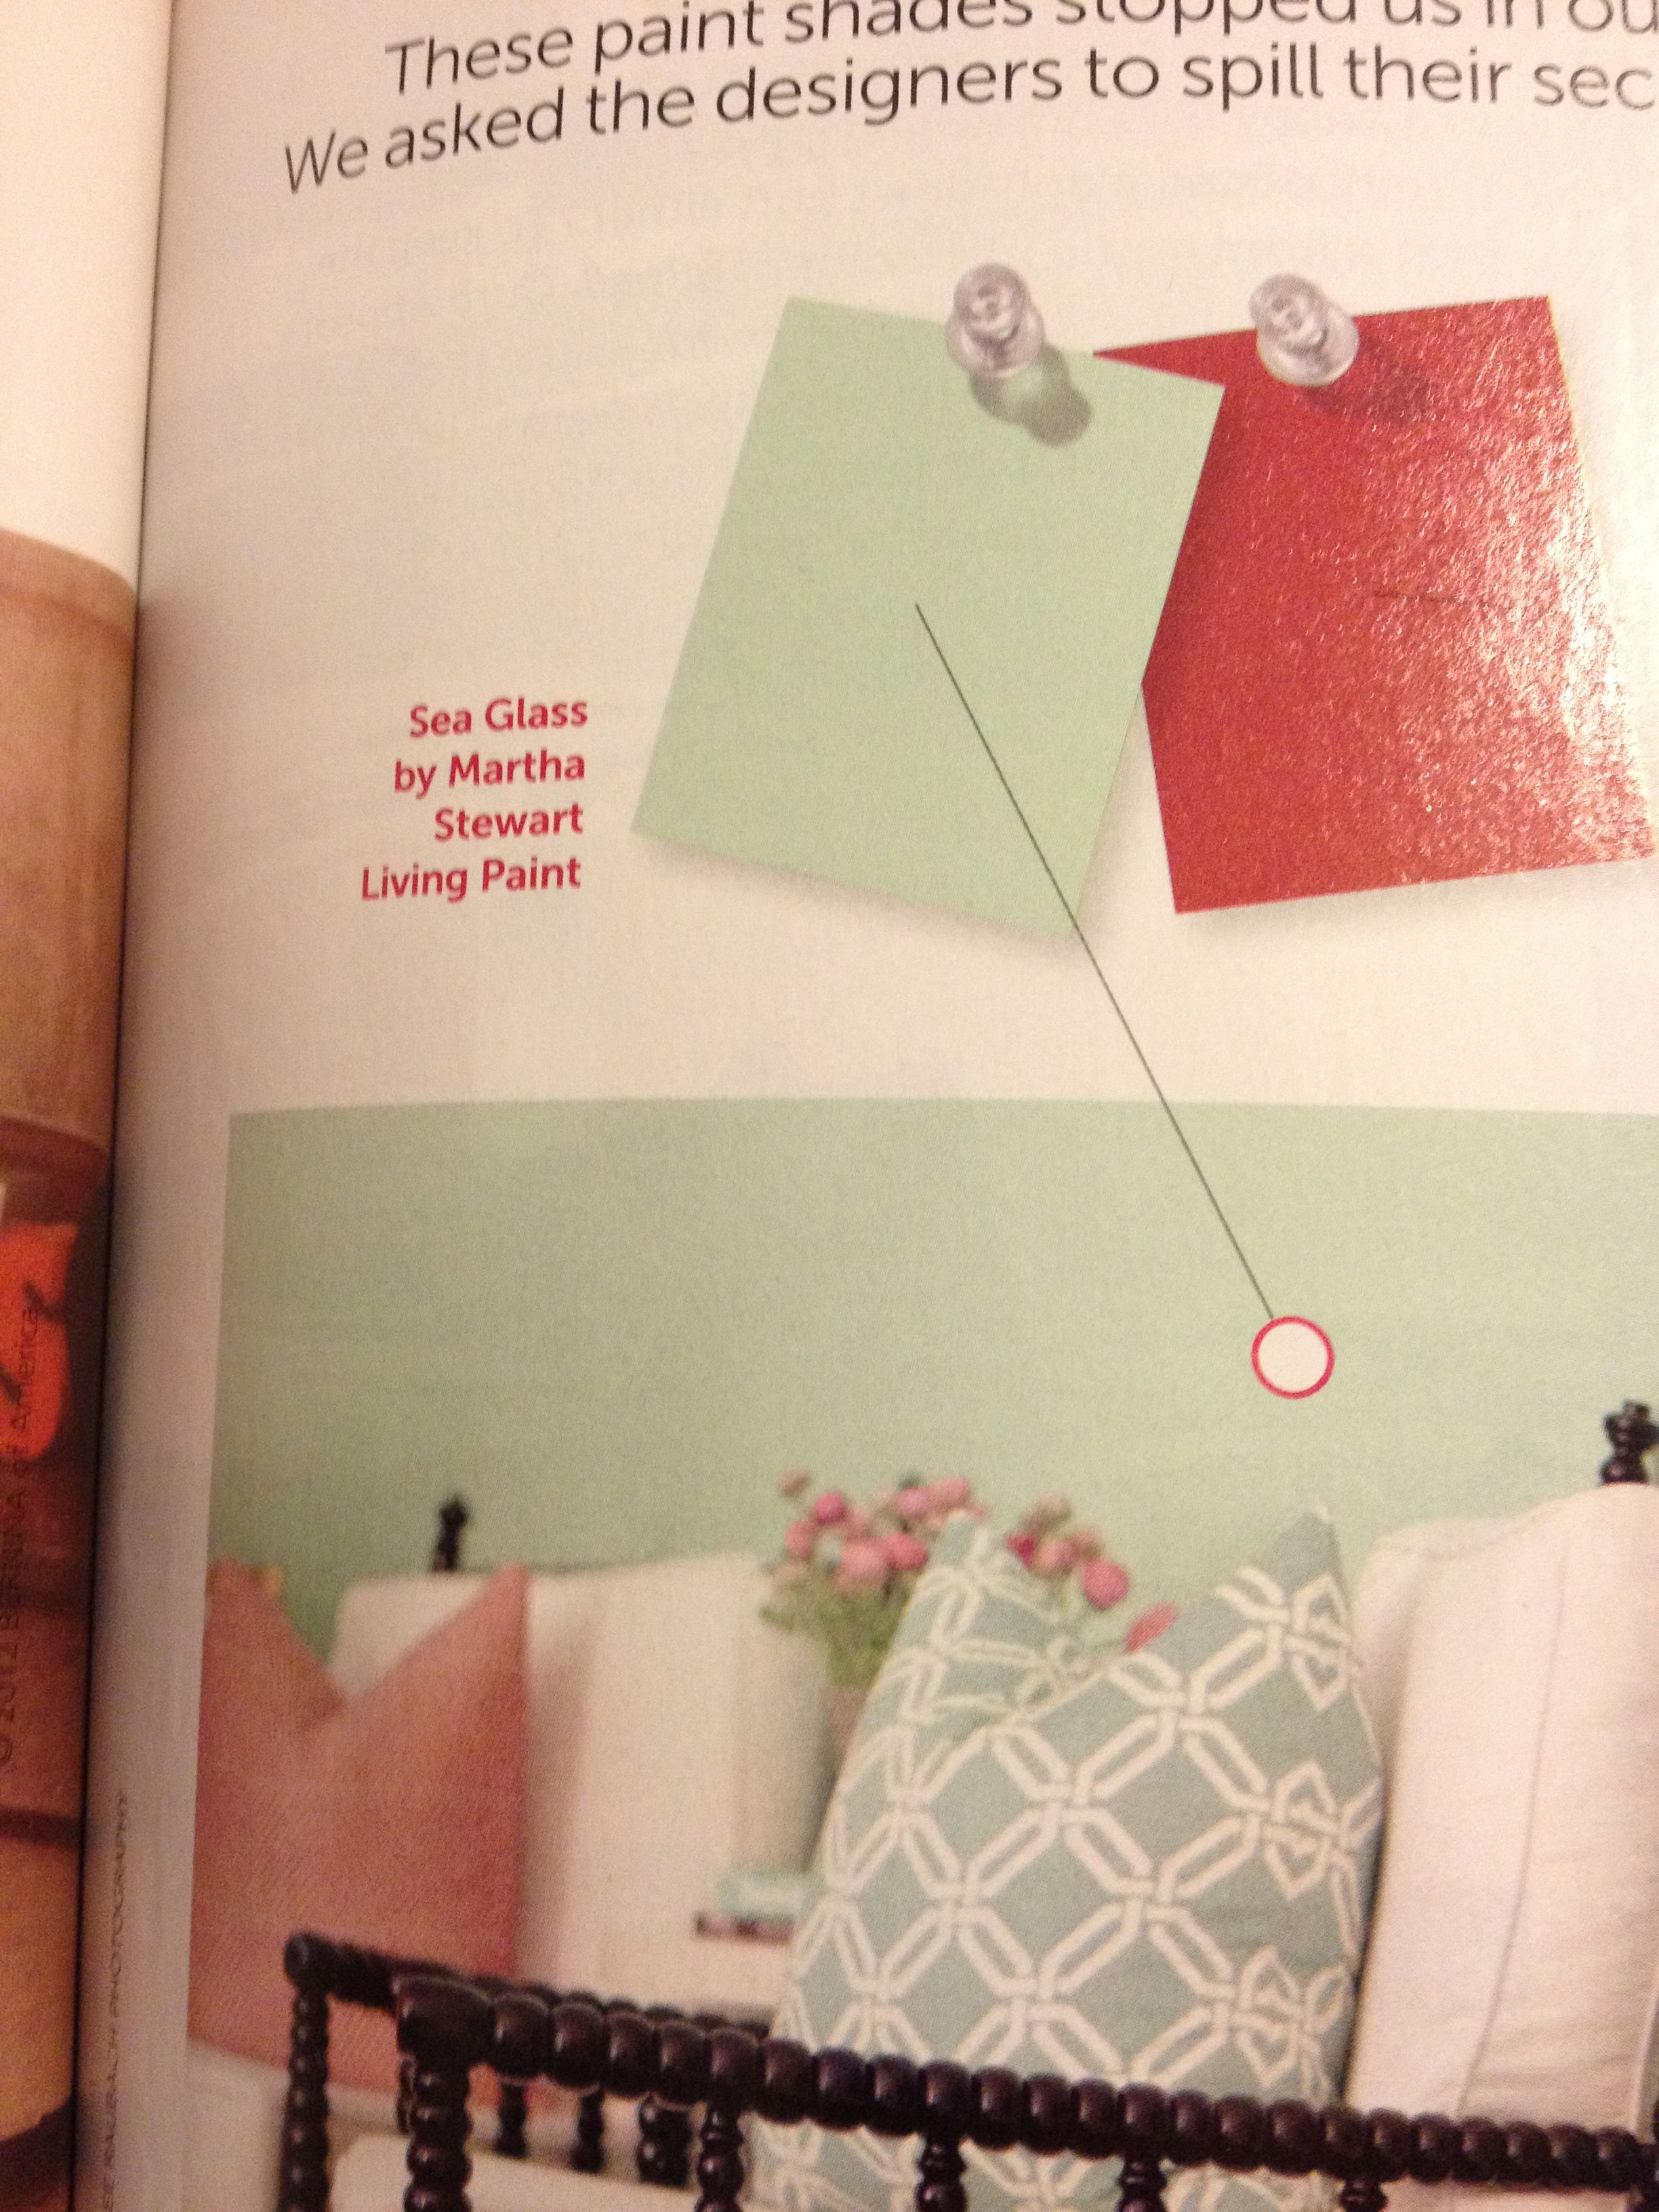 Martha Stewart Bedroom Paint Colors Paint Color Sea Glass By Martha Stewart For The Home Random